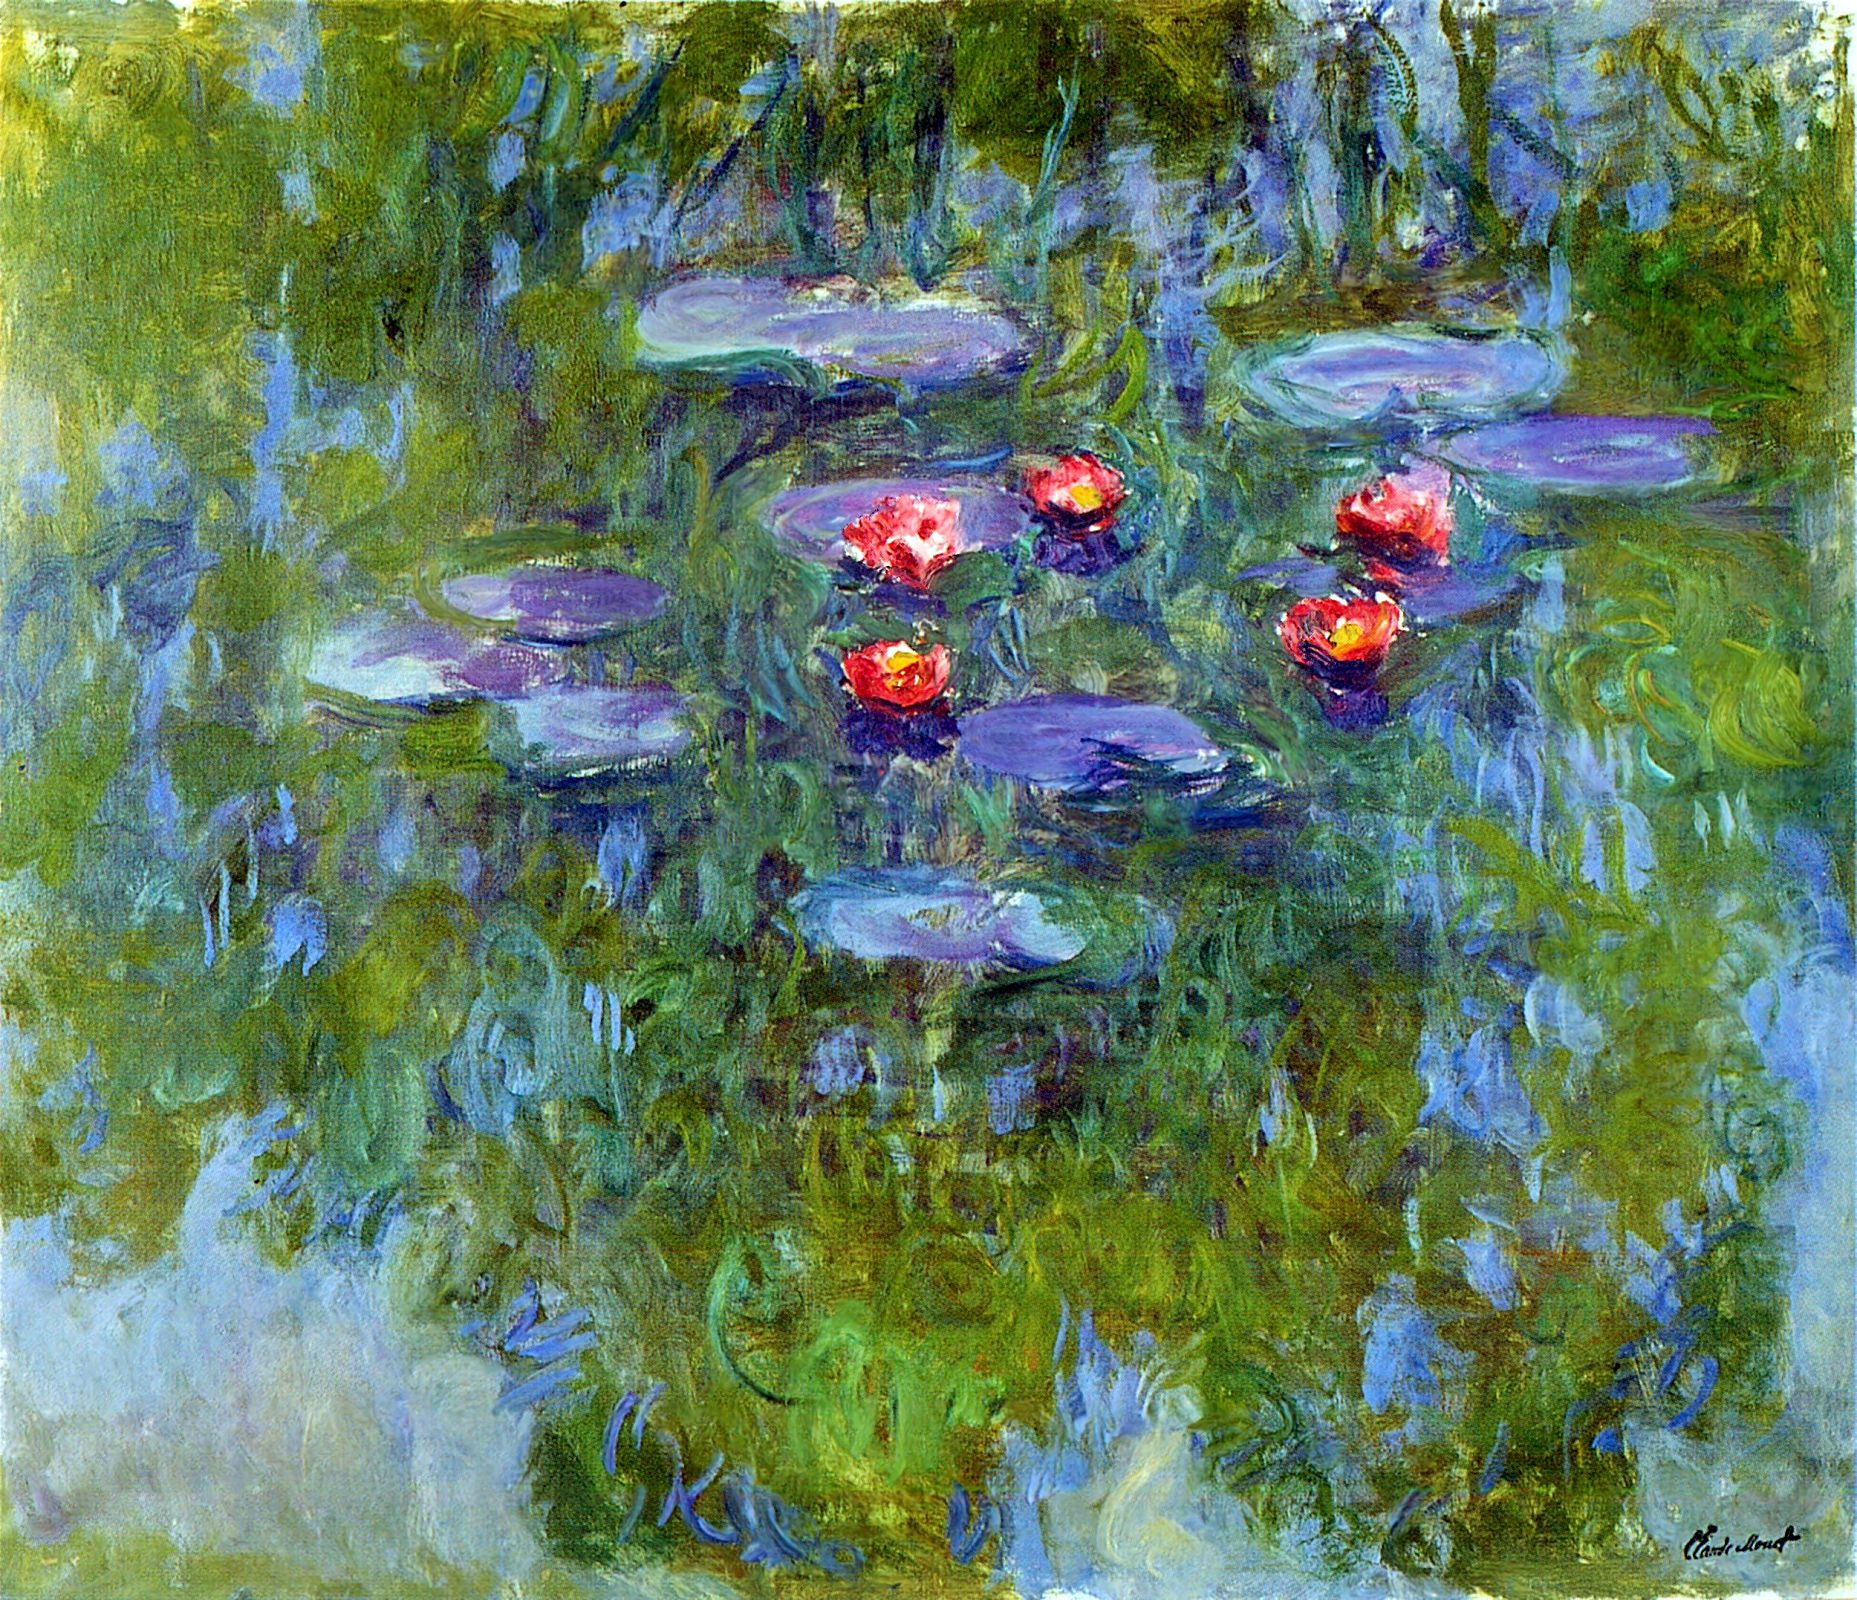 Monet Water Lilies Painting | Water Lilies | Monet ...